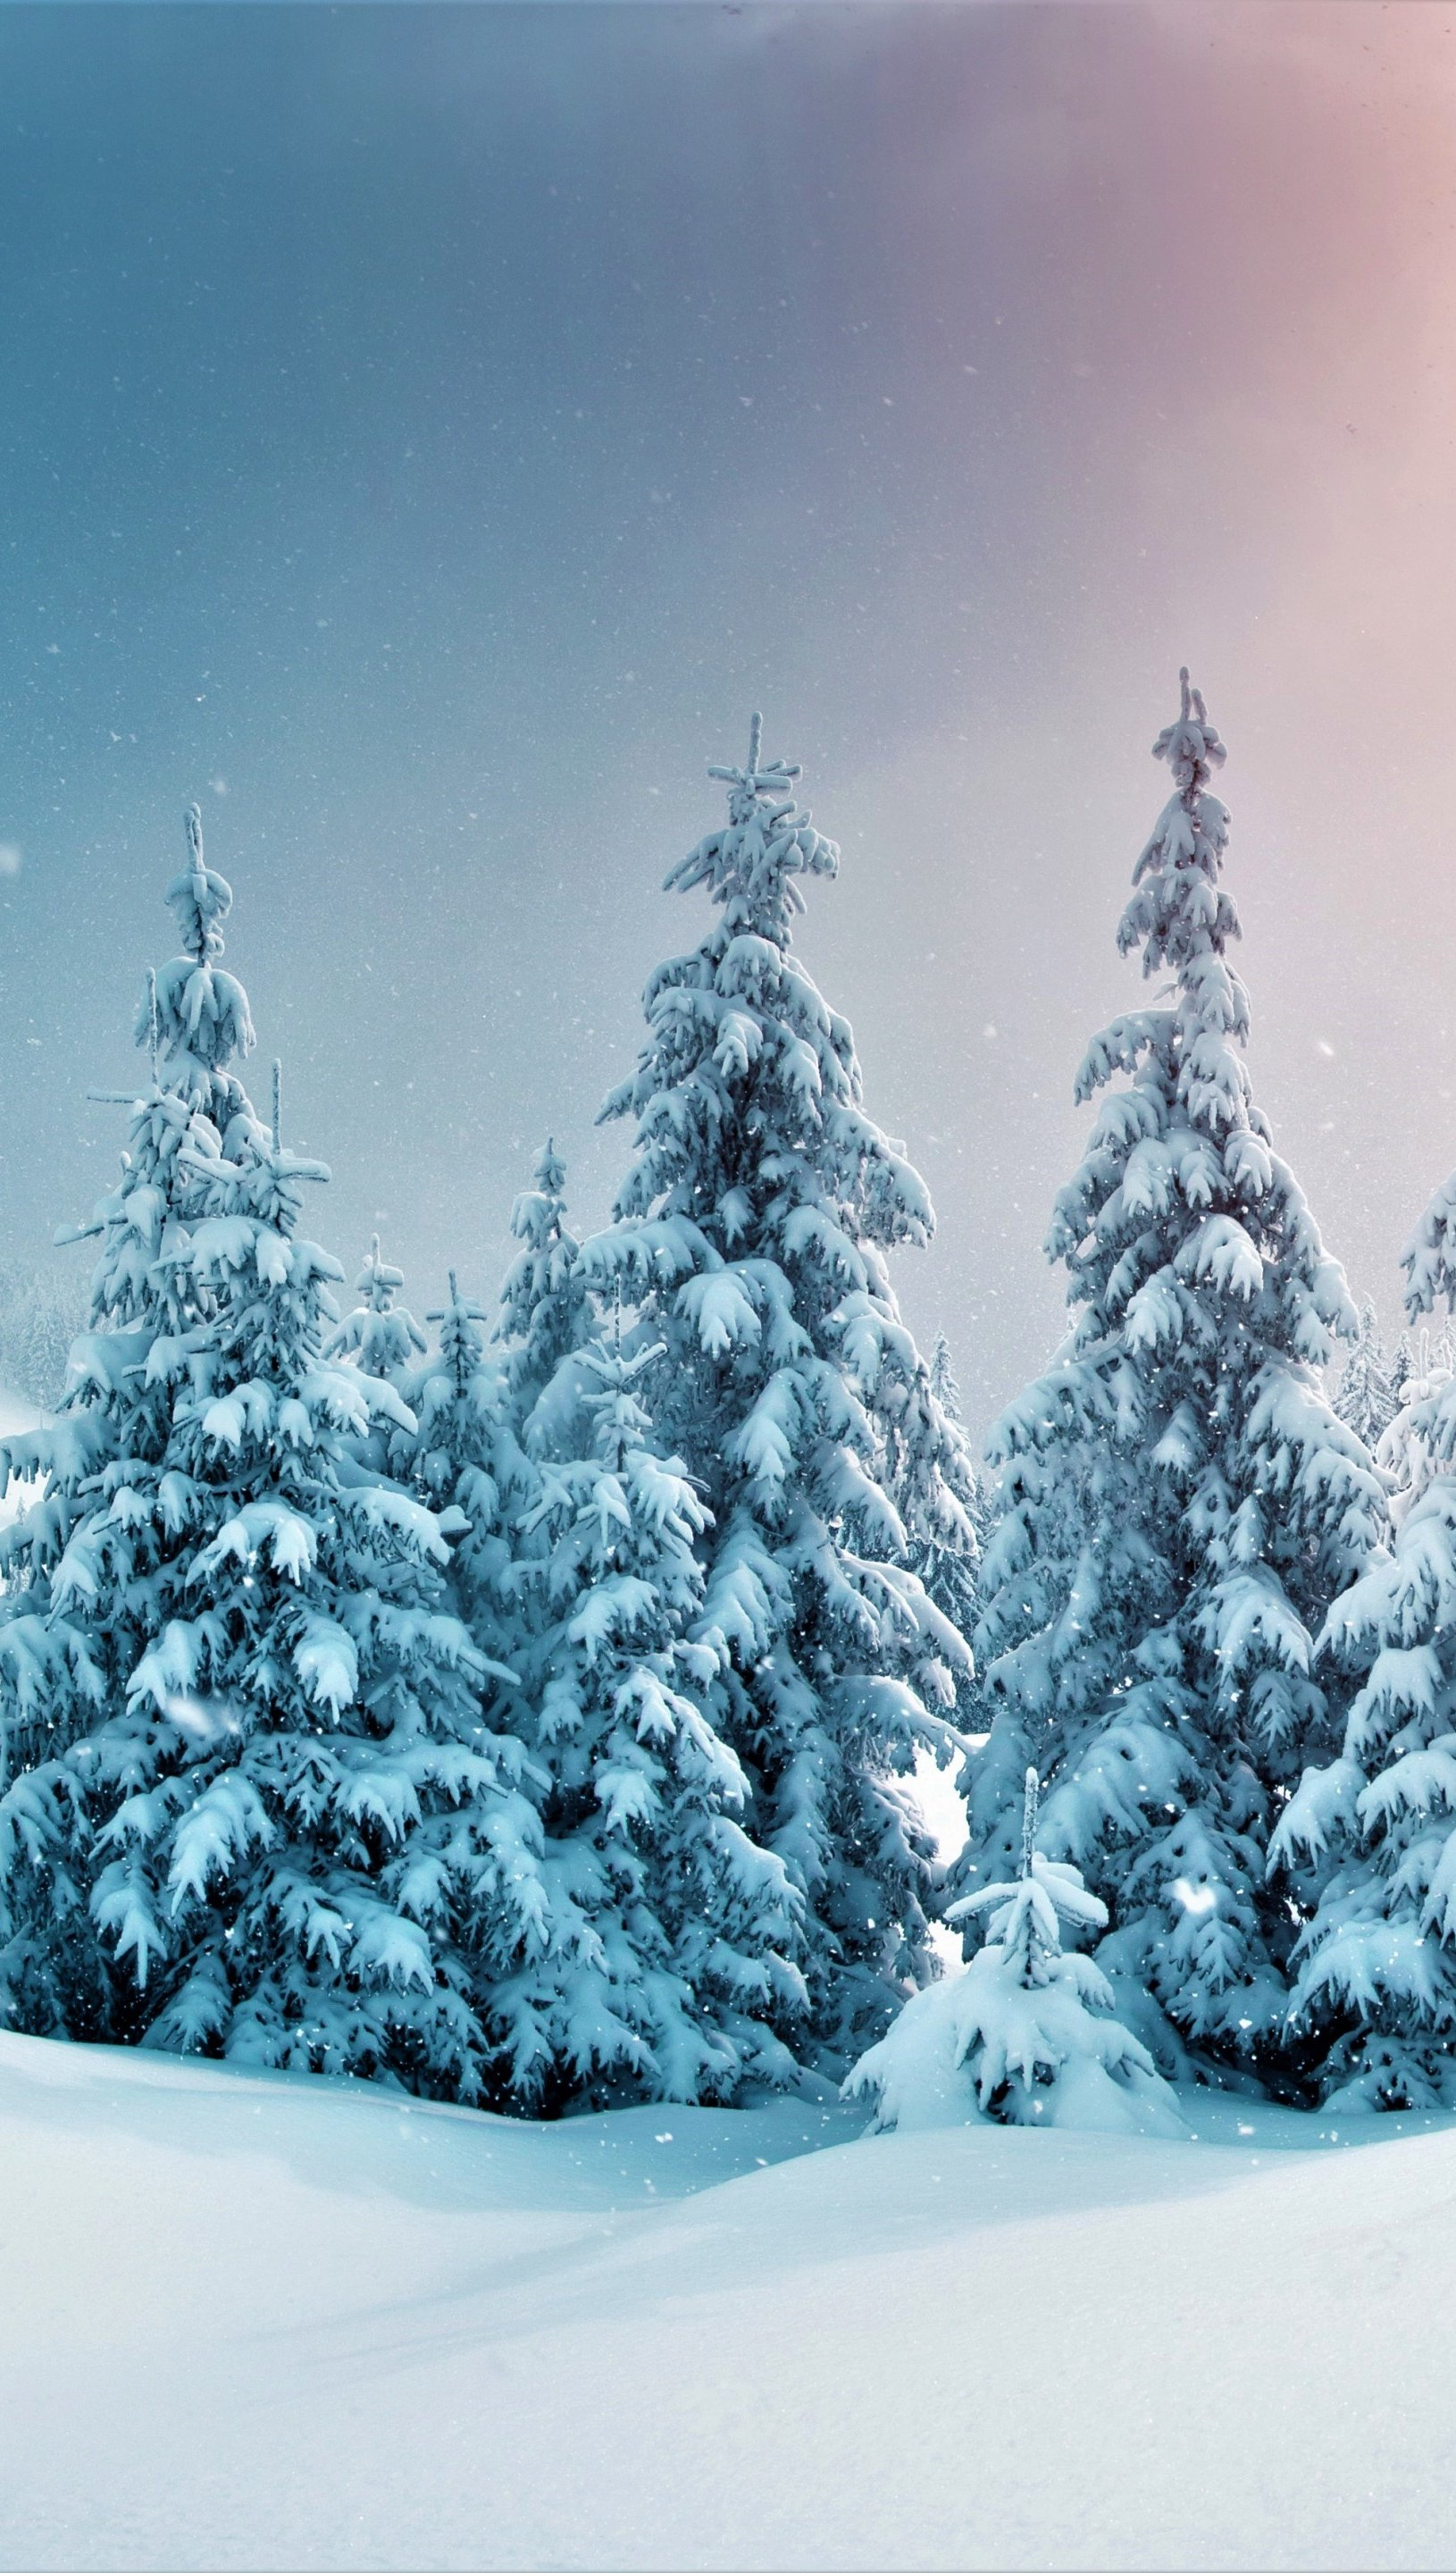 Wallpaper Pine trees in snowy forest Vertical